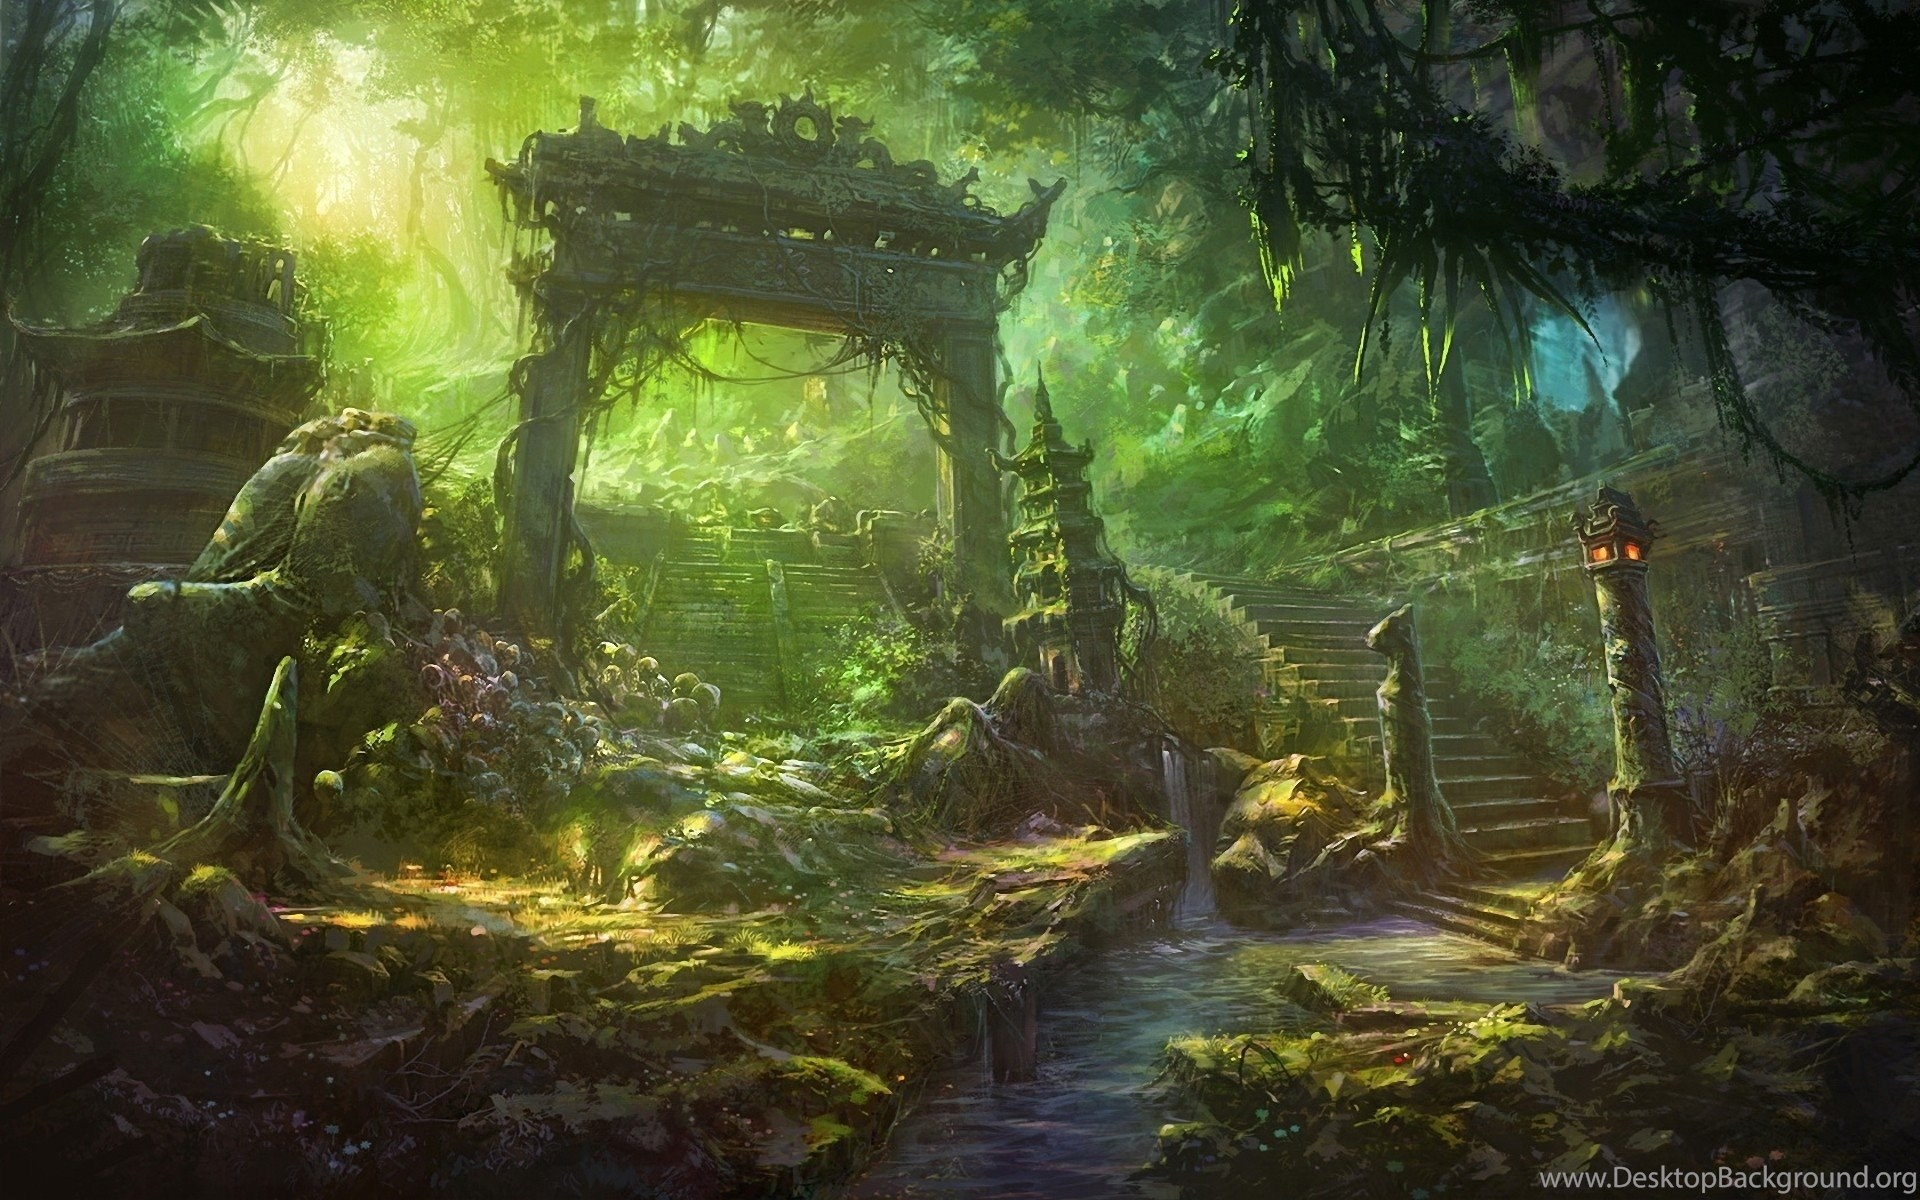 Anime Fantasy Forest Landscape Wallpapers Desktop Background